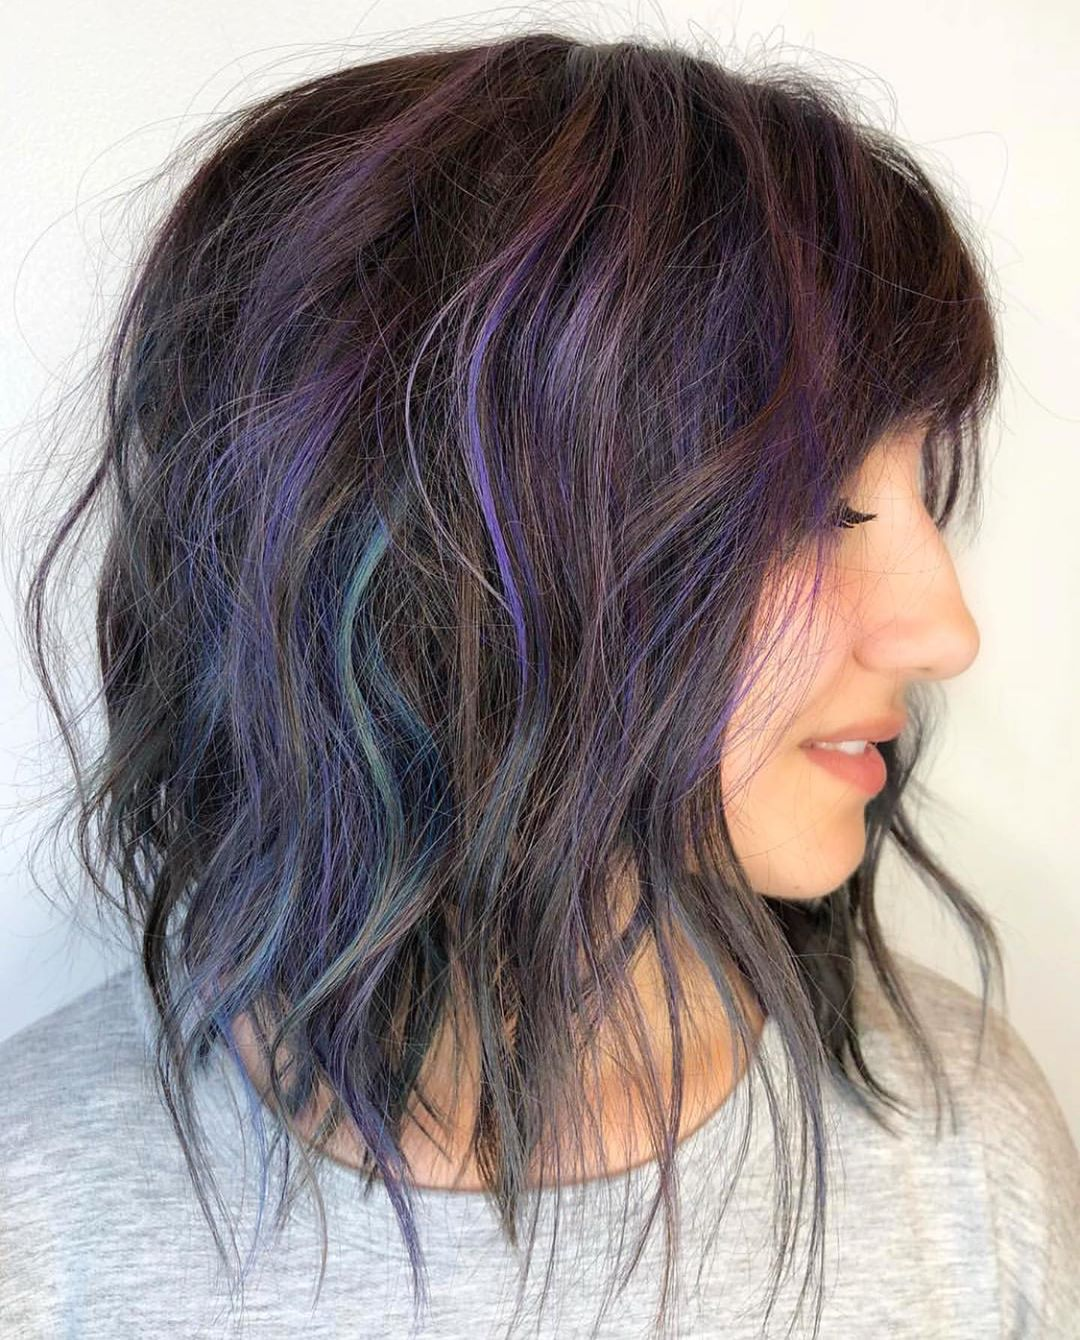 Layered Medium-Length Hairstyle for Thick Hair